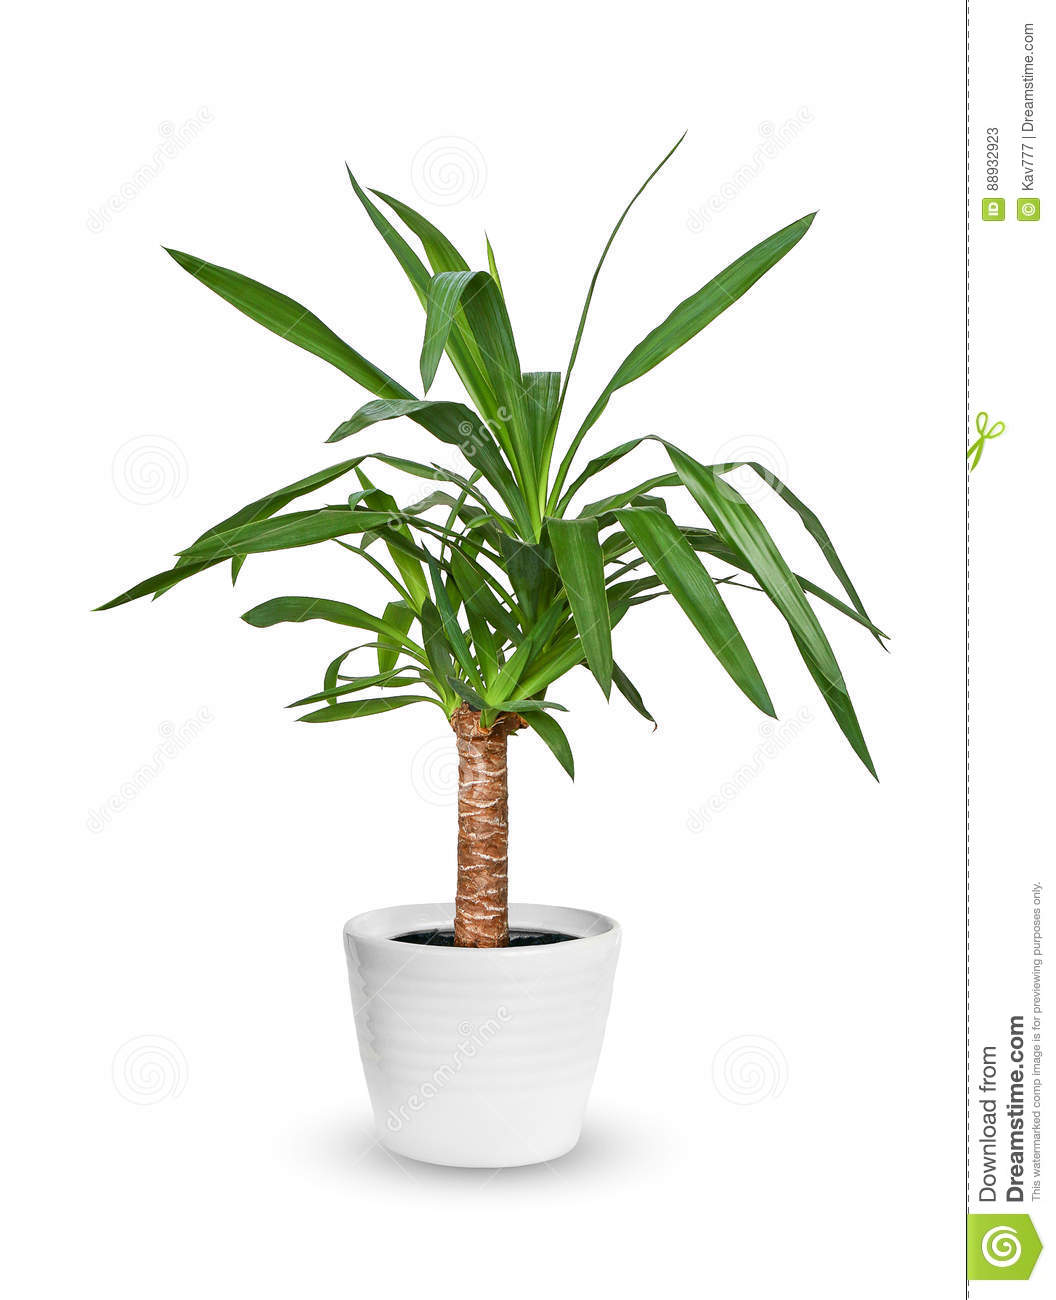 Houseplant - Yucca elephantipes a potted plant isolated over white.